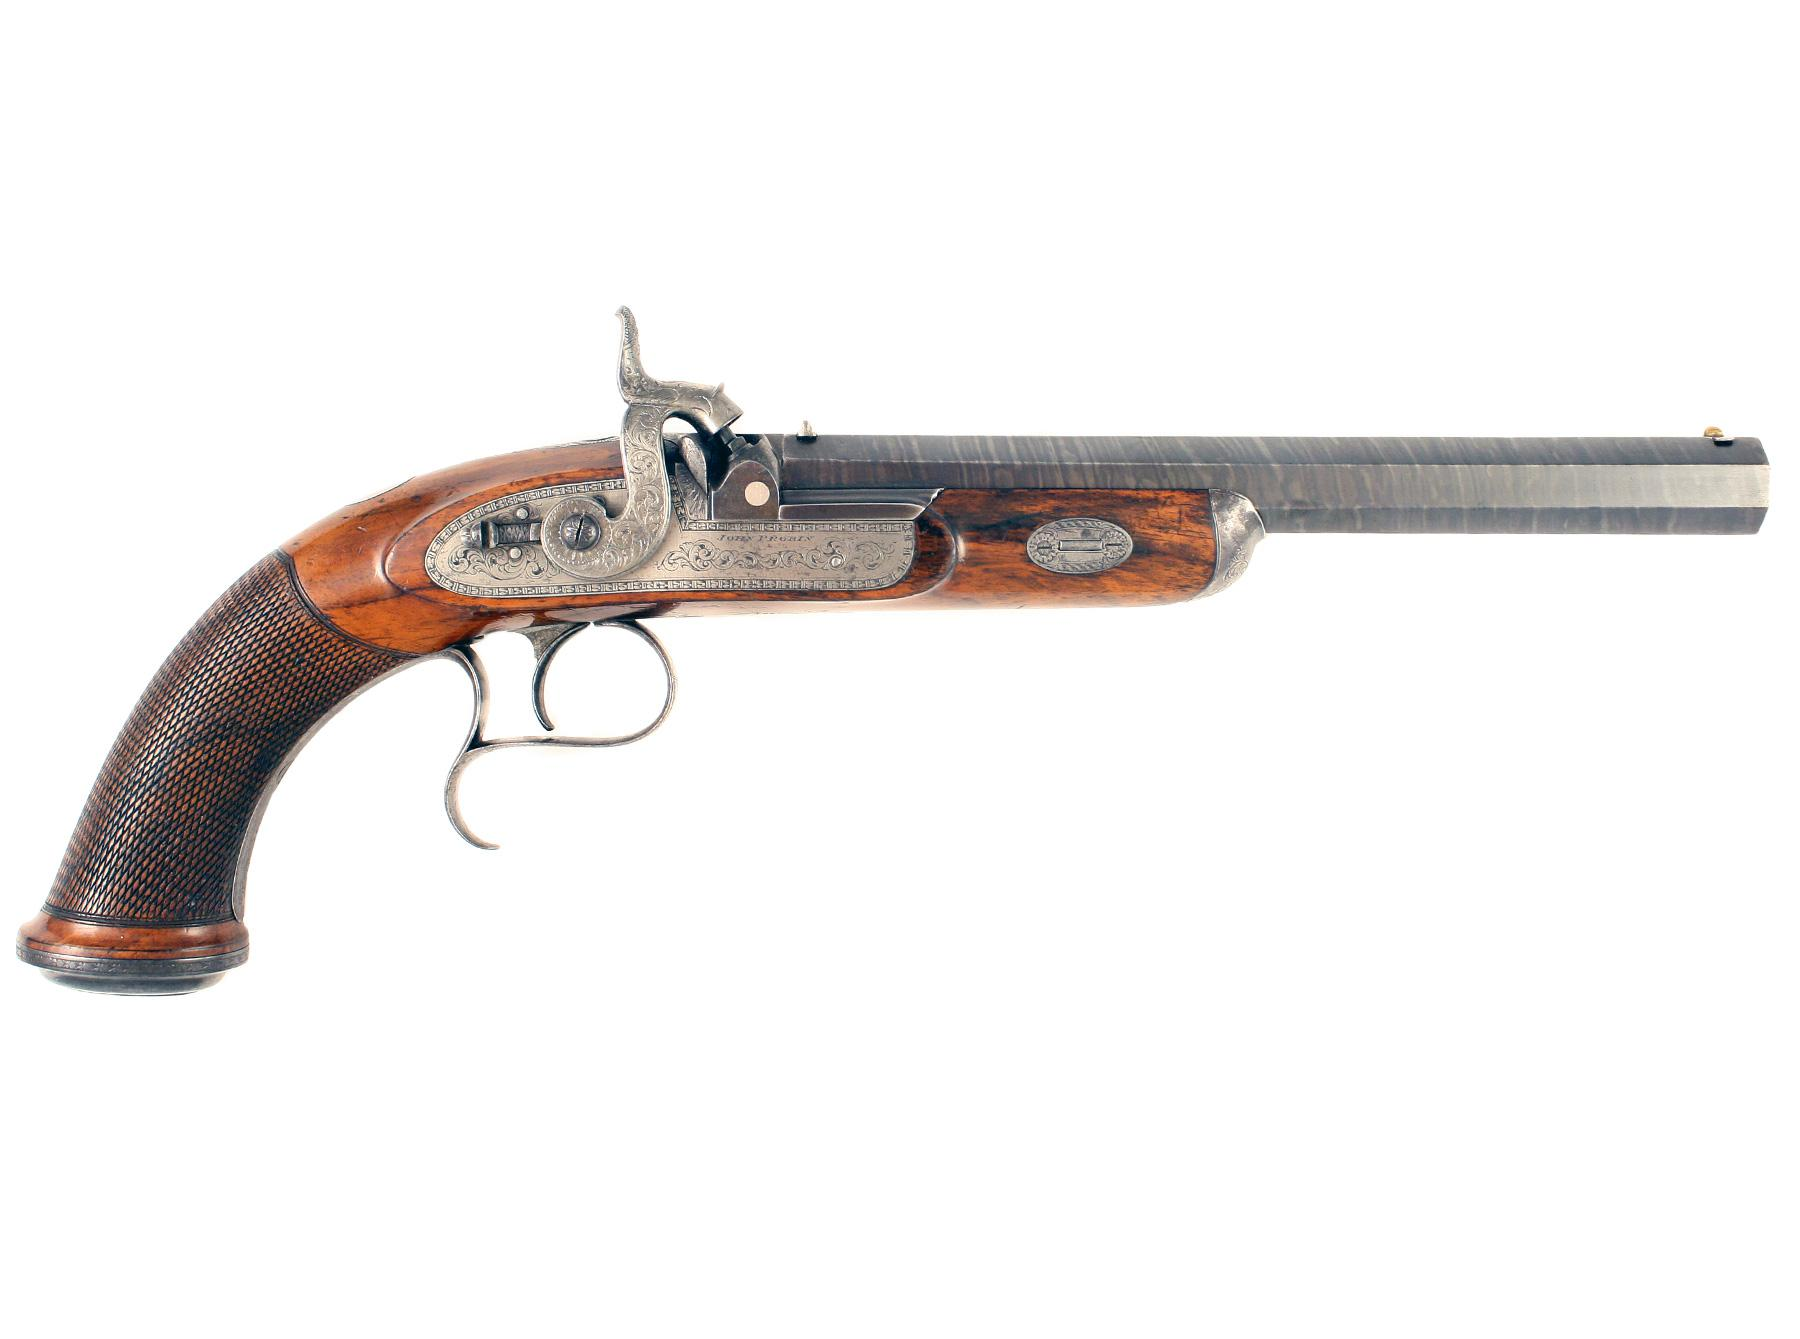 A Percussion Target Pistol by J. Probin.